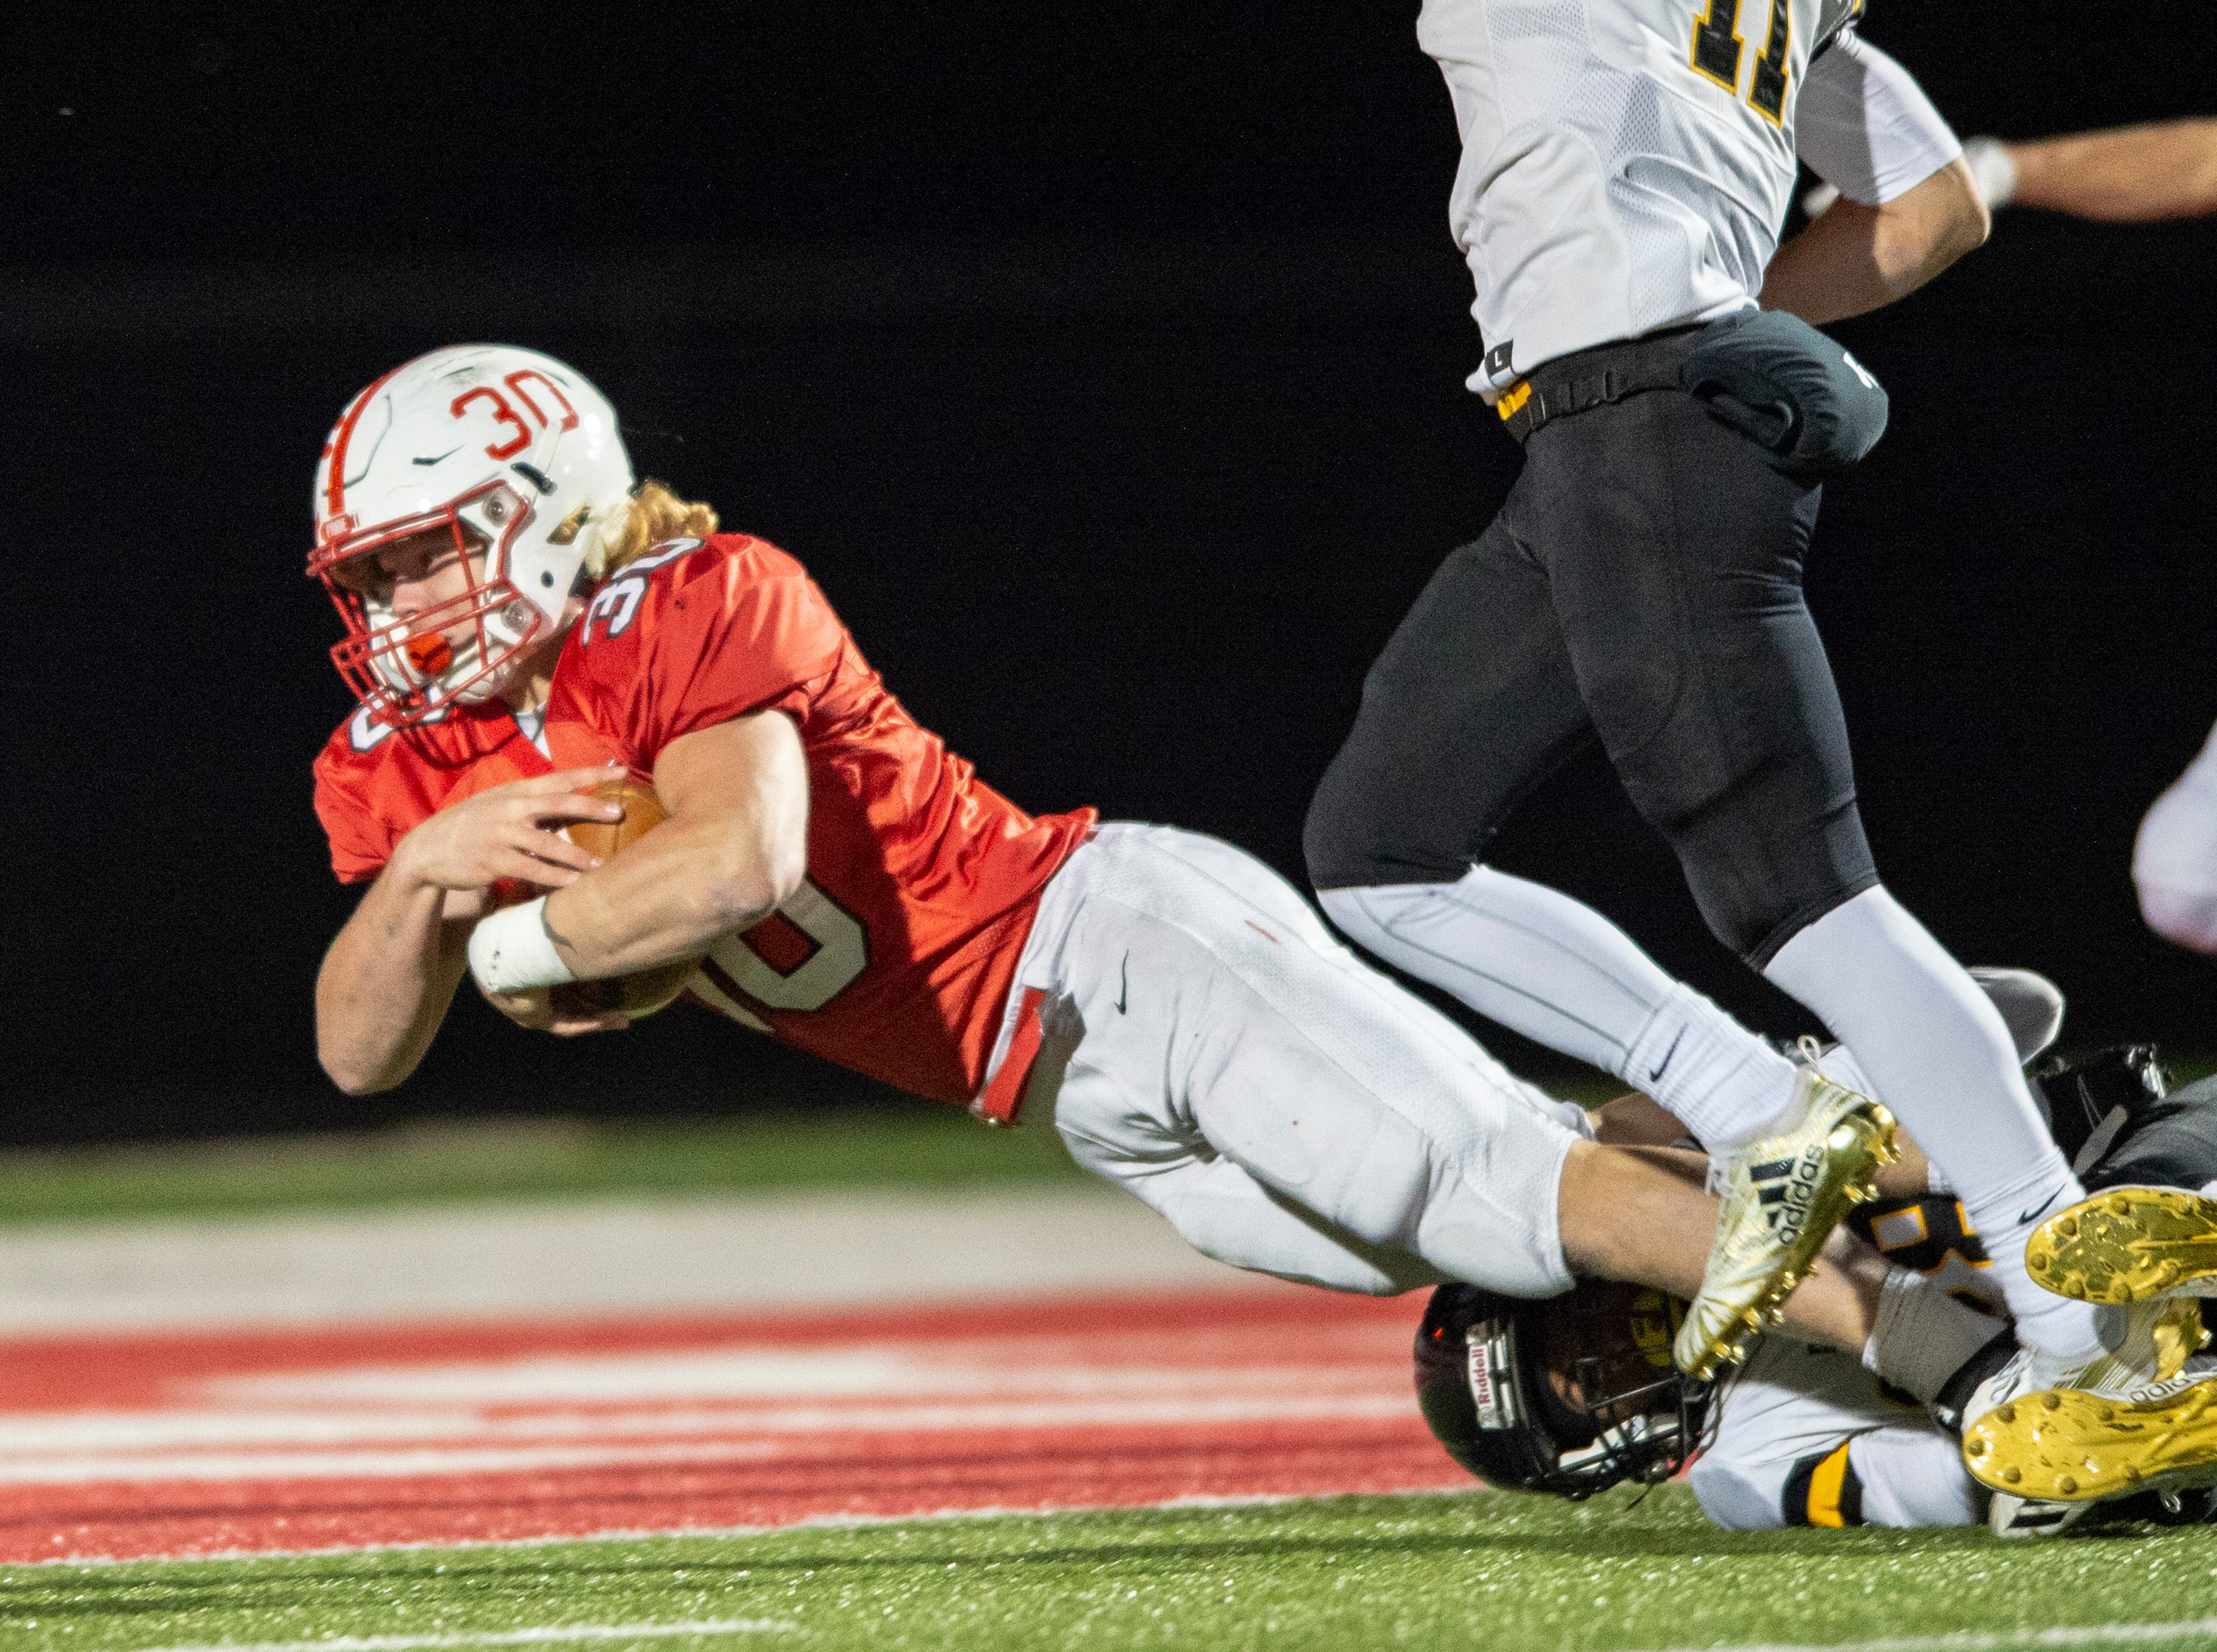 Center Grove High School sophomore Carson Steele (30) makes a diving effort toward the goal line, coming up a yard short, during the first half of action. Center Grove High School hosted Avon High School in an IHSAA Class 6A Regional Championship varsity football game, Friday, Nov. 9, 2018.